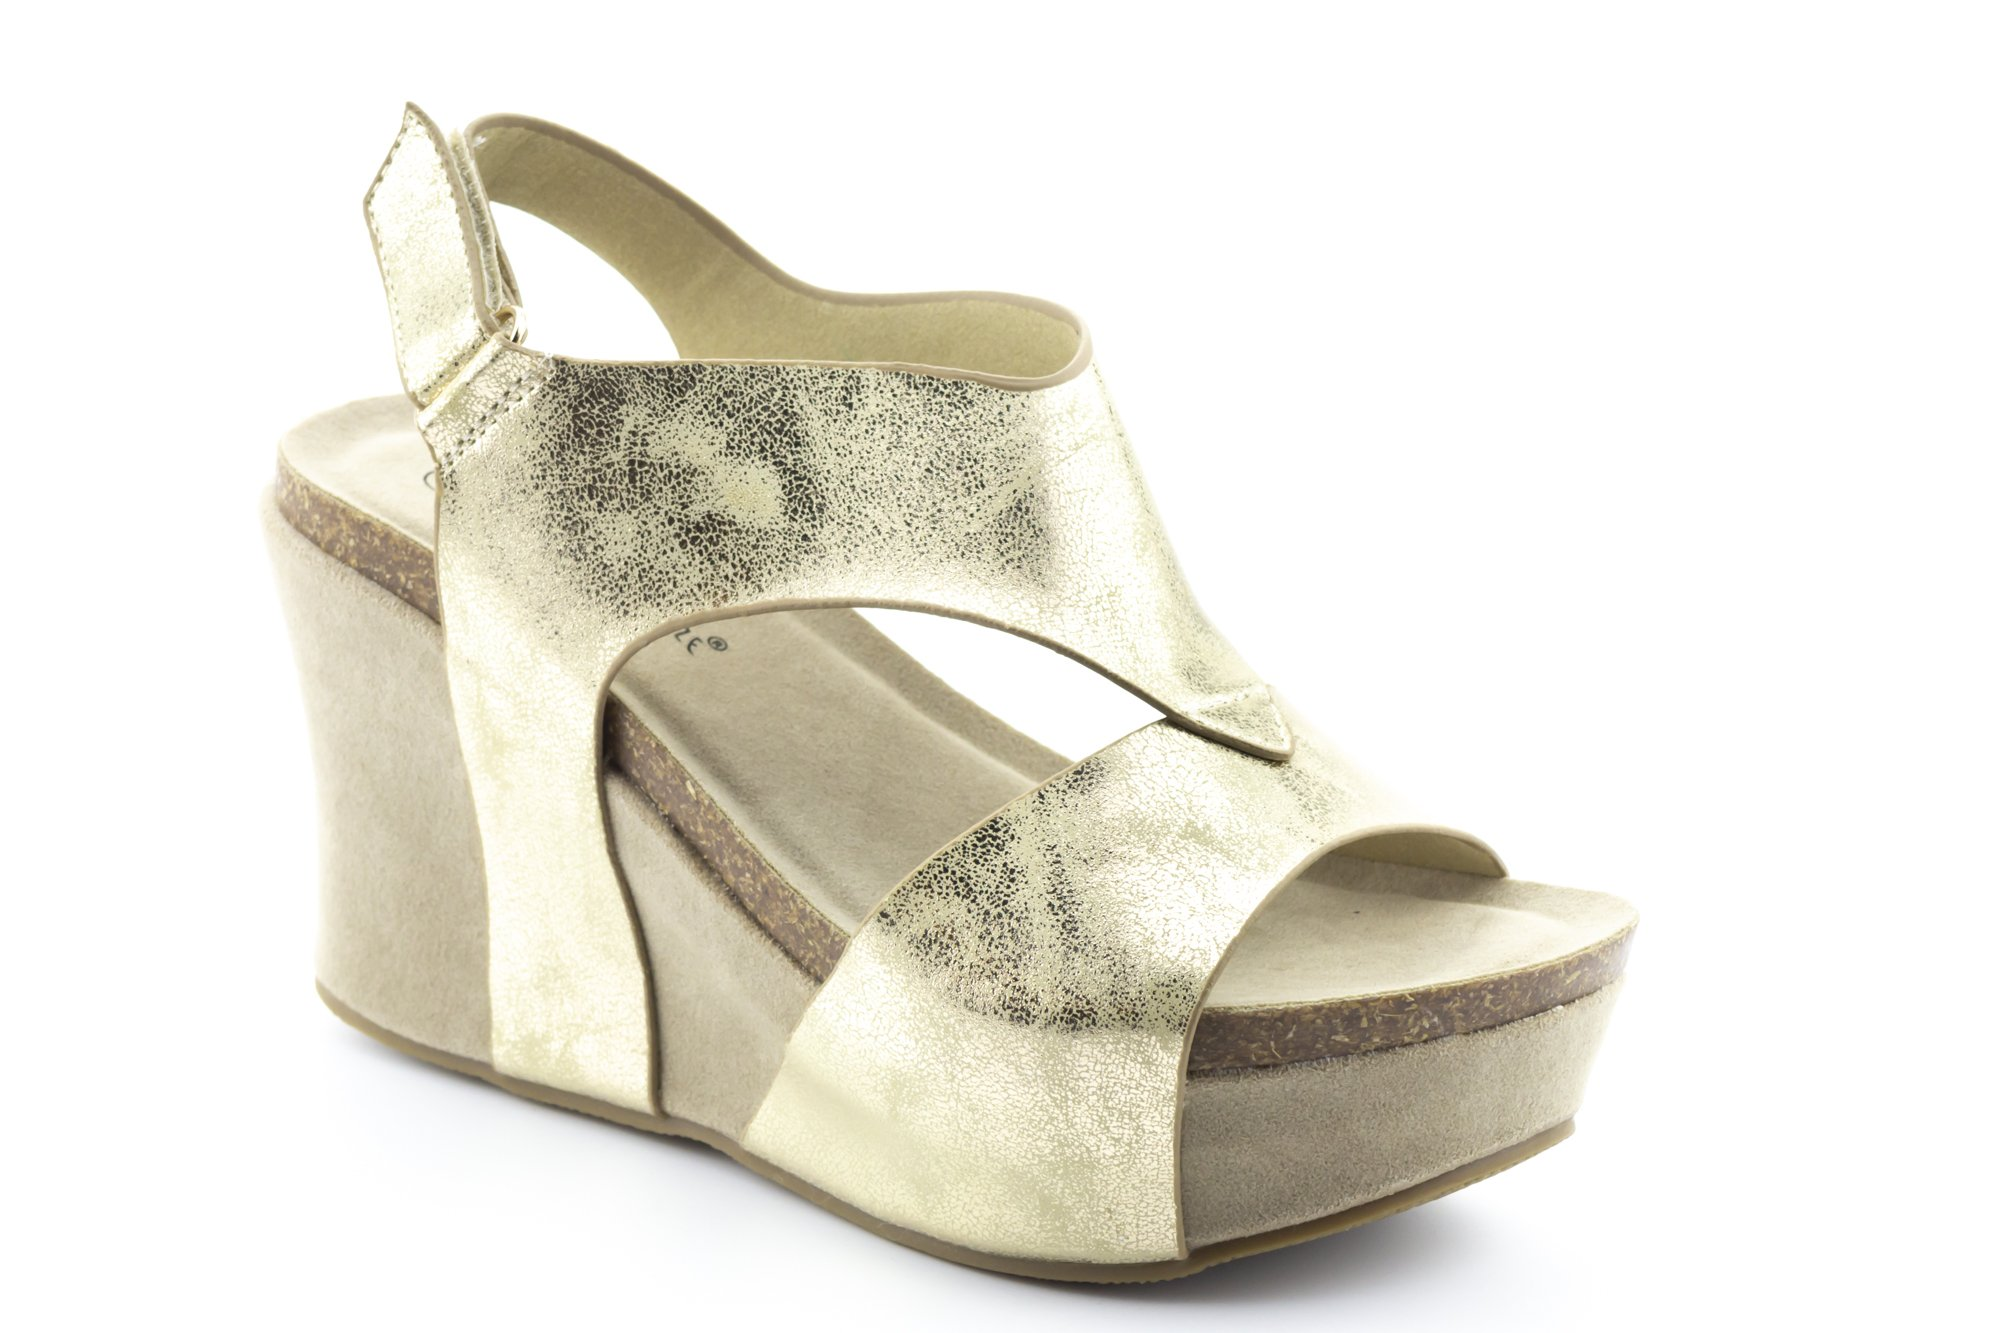 CALICO KIKI TRUCE-CK02 Women's Wedge Sandal Platform Shoes Comfort Open Toe Velcro Ankle Strap (8 US Gold)